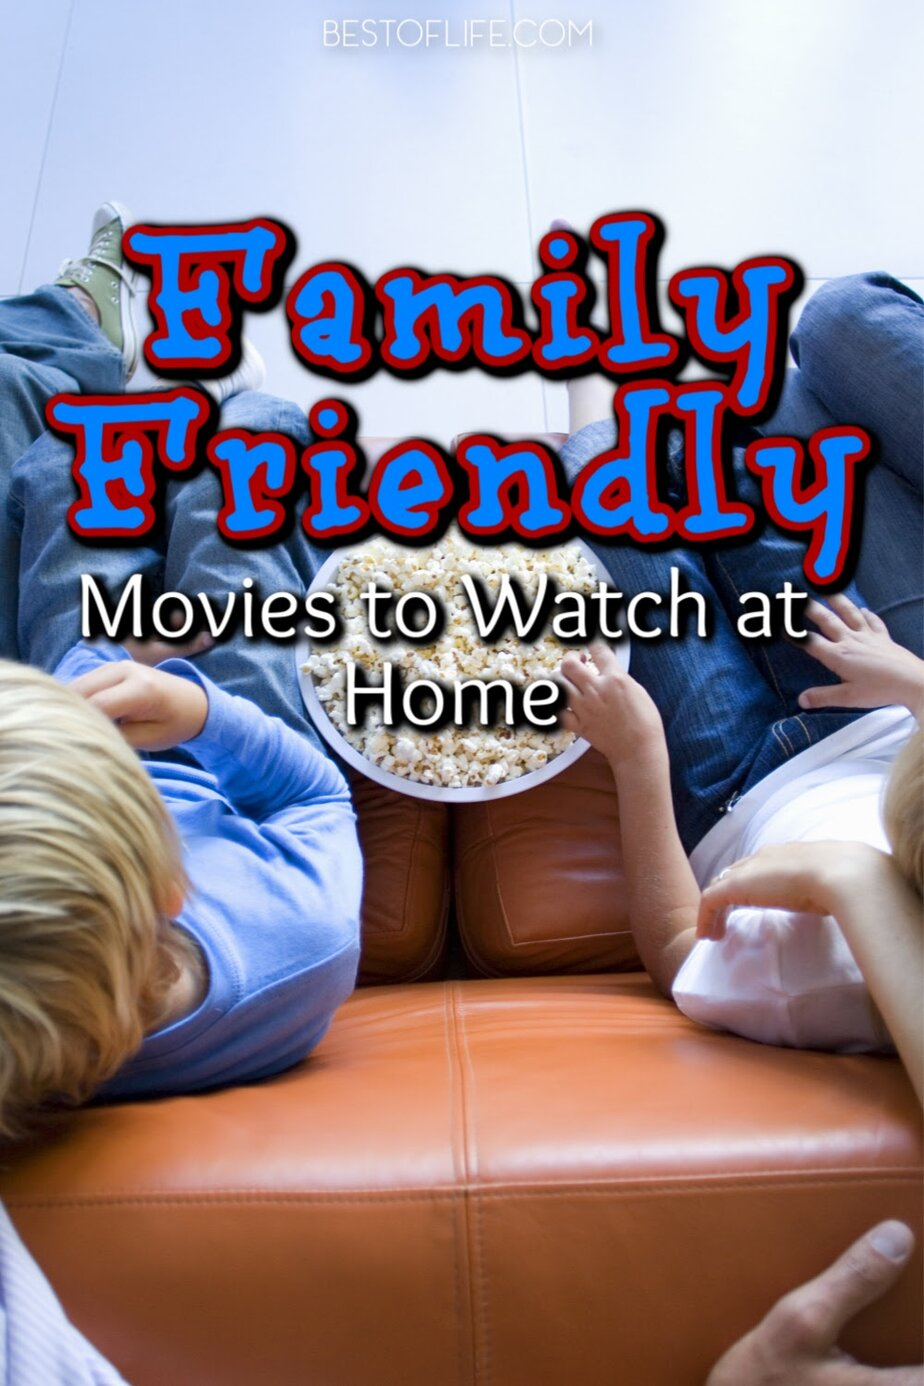 Finding family friendly movies to watch is so much easier now that you have access to libraries of movies for families online. Family Friendly Movies for Kids | Family Friendly Movies for Teens | Family Friendly Halloween Movies | Family Friendly Comedy Movies | Family Friendly Christmas Movies | Movies on Netflix for Families | Movies on Amazon for Families #family #movies via @thebestoflife